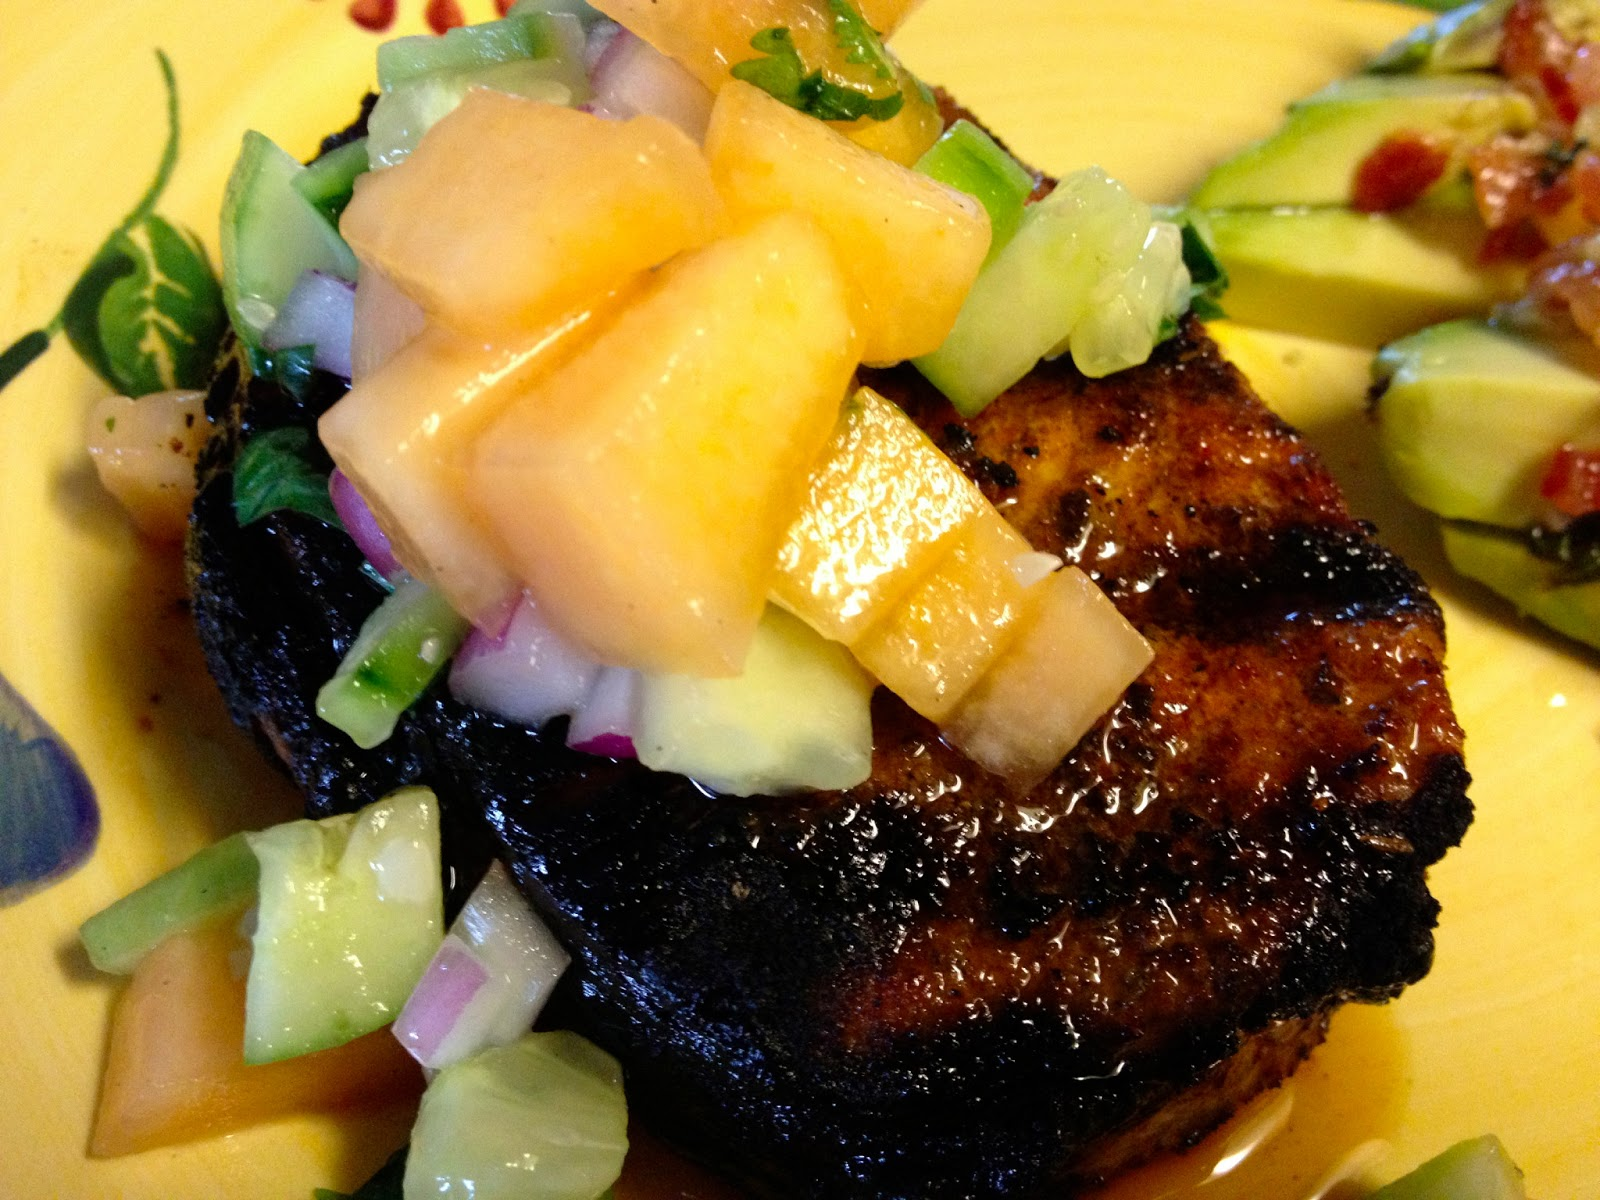 ... Pasta to Paleo: Spicy Grilled Pork Chops with Cucumber Melon Salsa